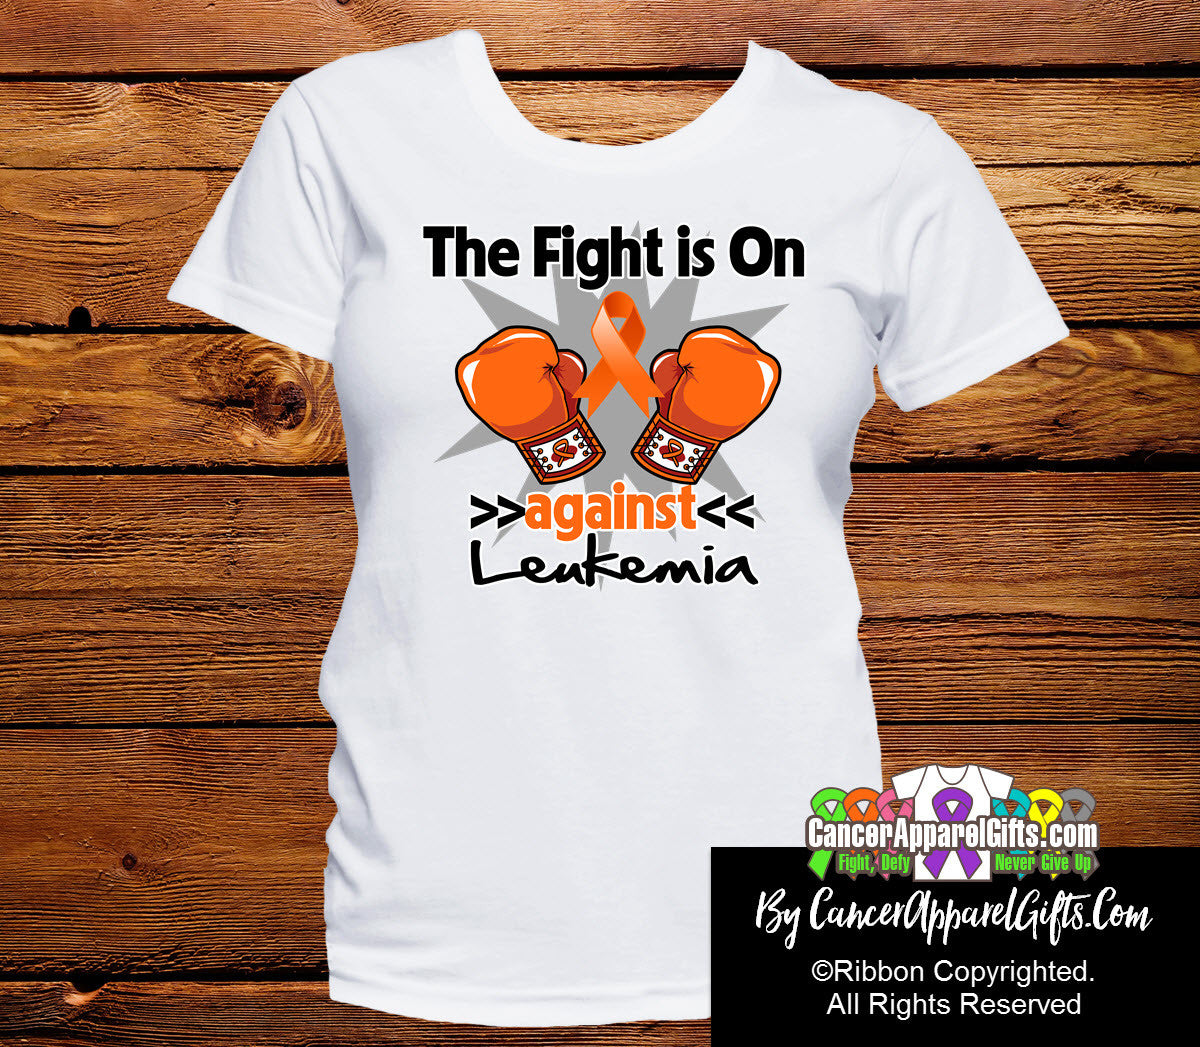 Kidney Cancer The Fight is On Ladies Shirts